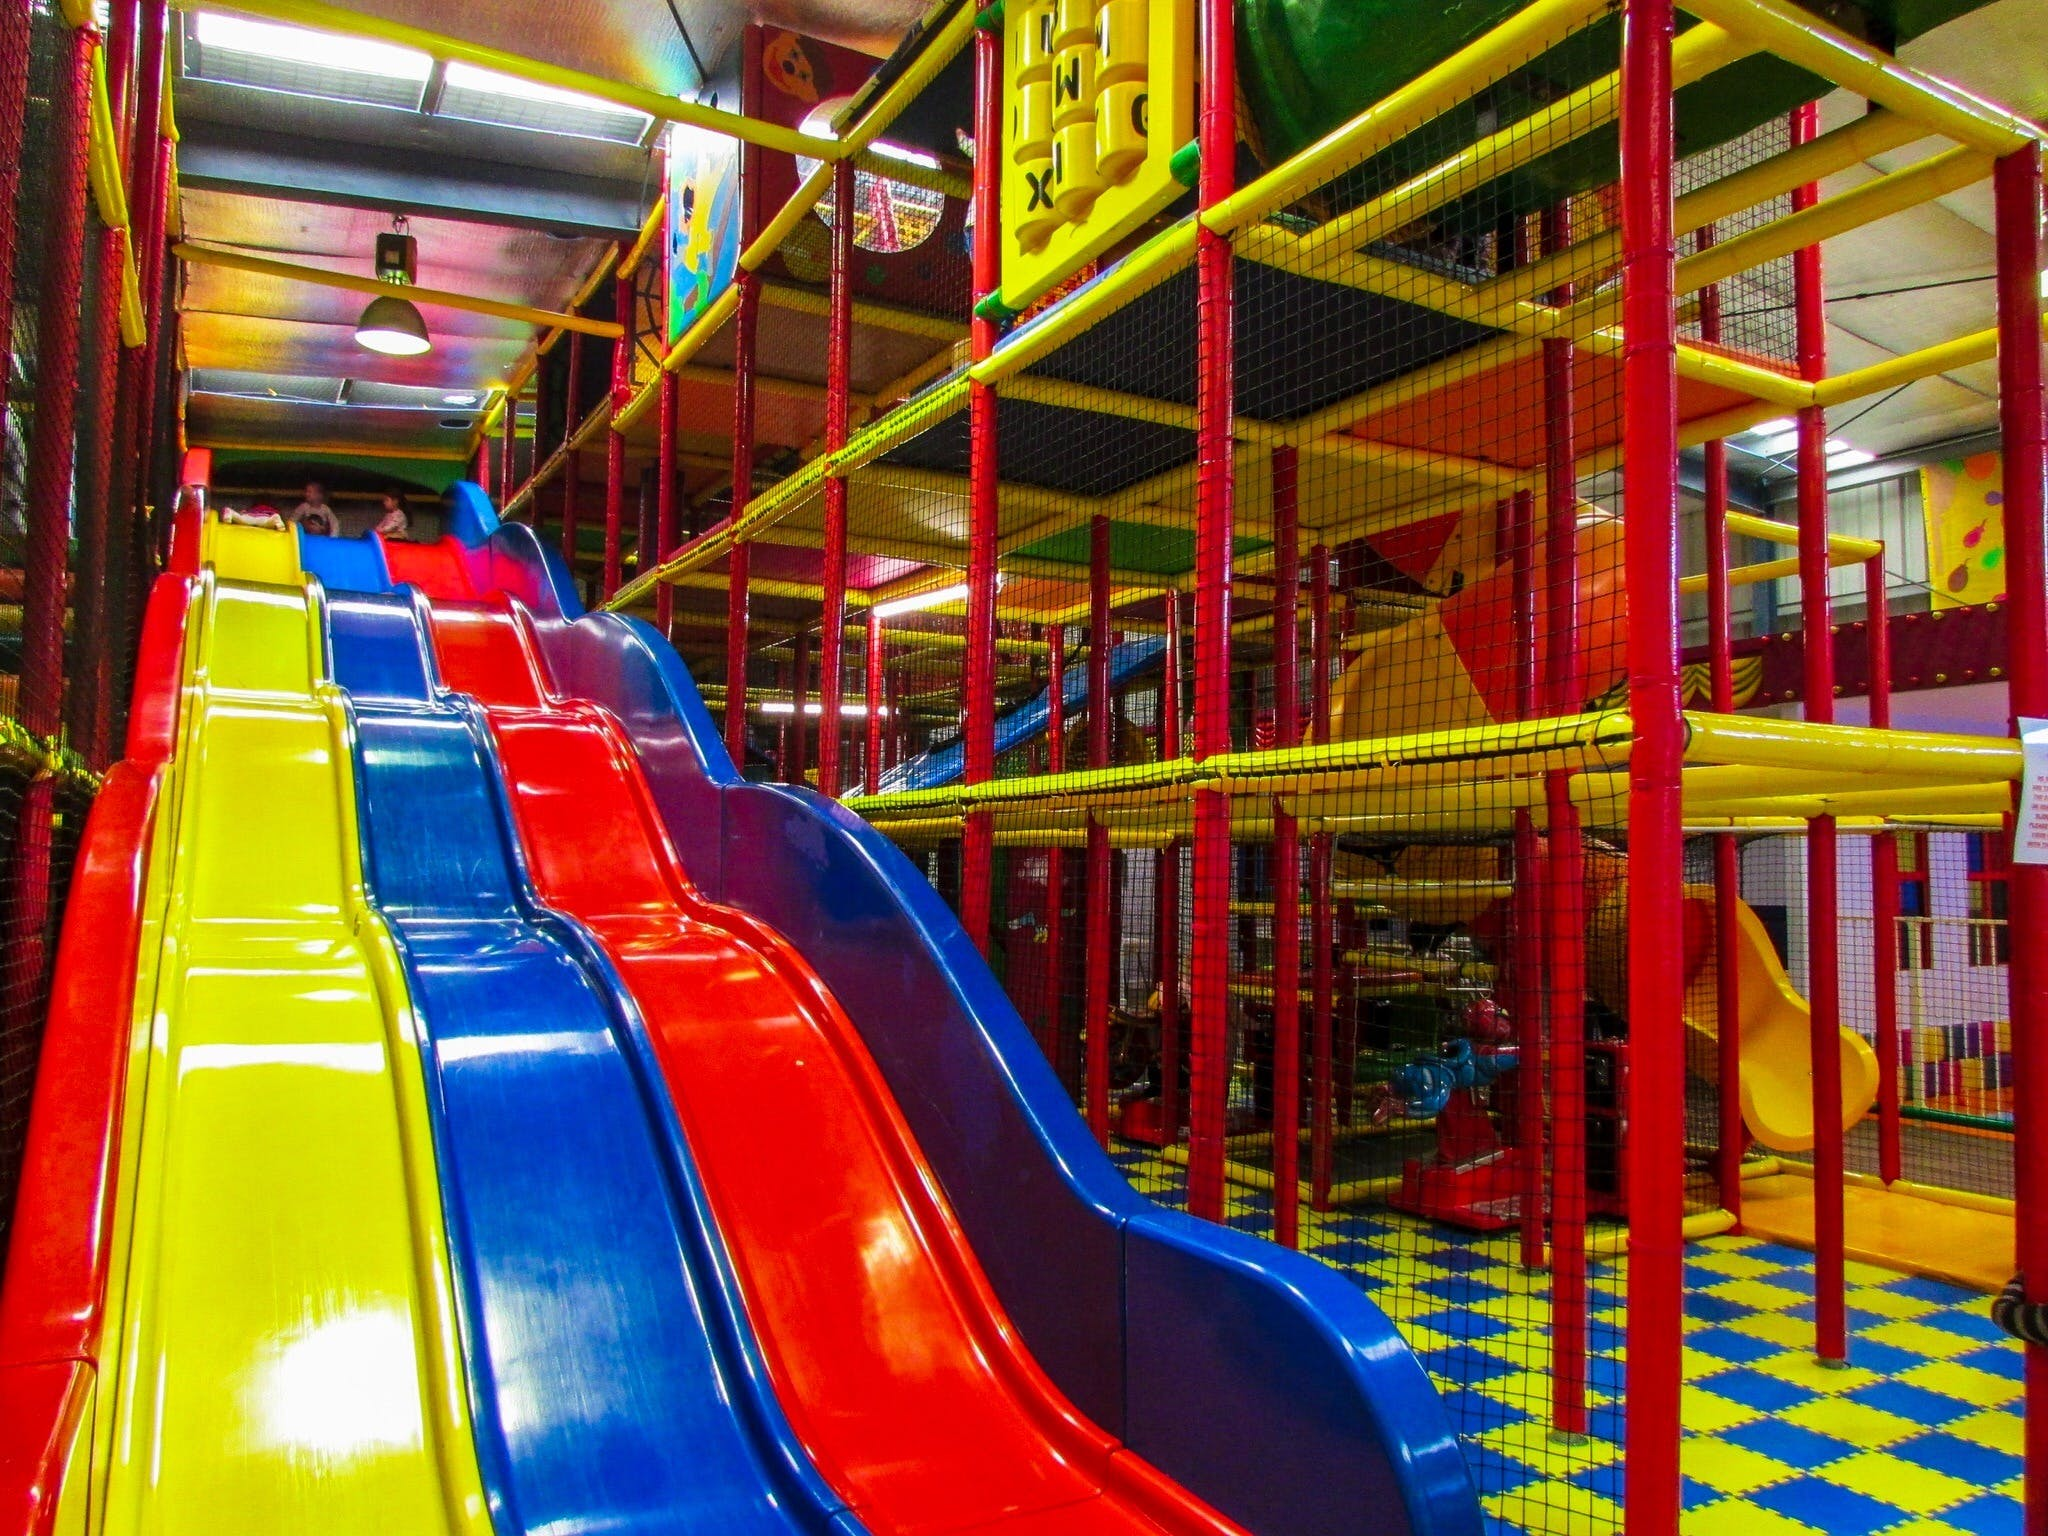 Kidz Shed Indoor Play Centre and Cafe - Find Attractions